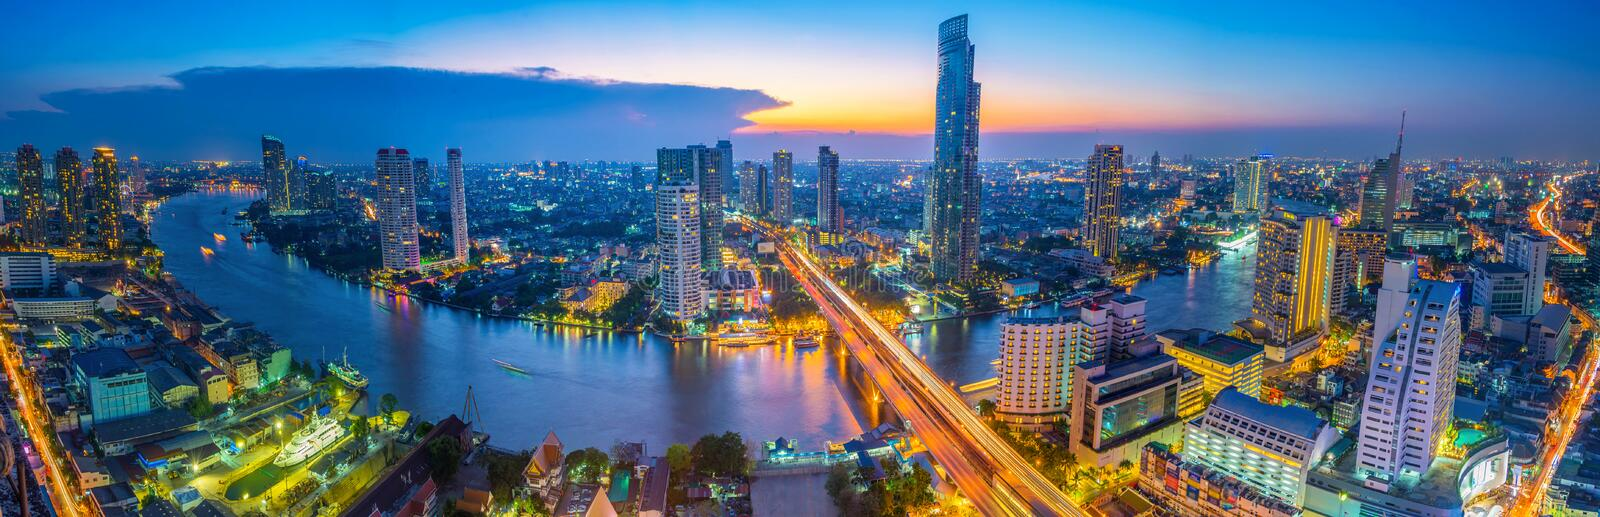 Download Landscape Of River In Bangkok Cityscape In Night Time Stock Image - Image: 56095003